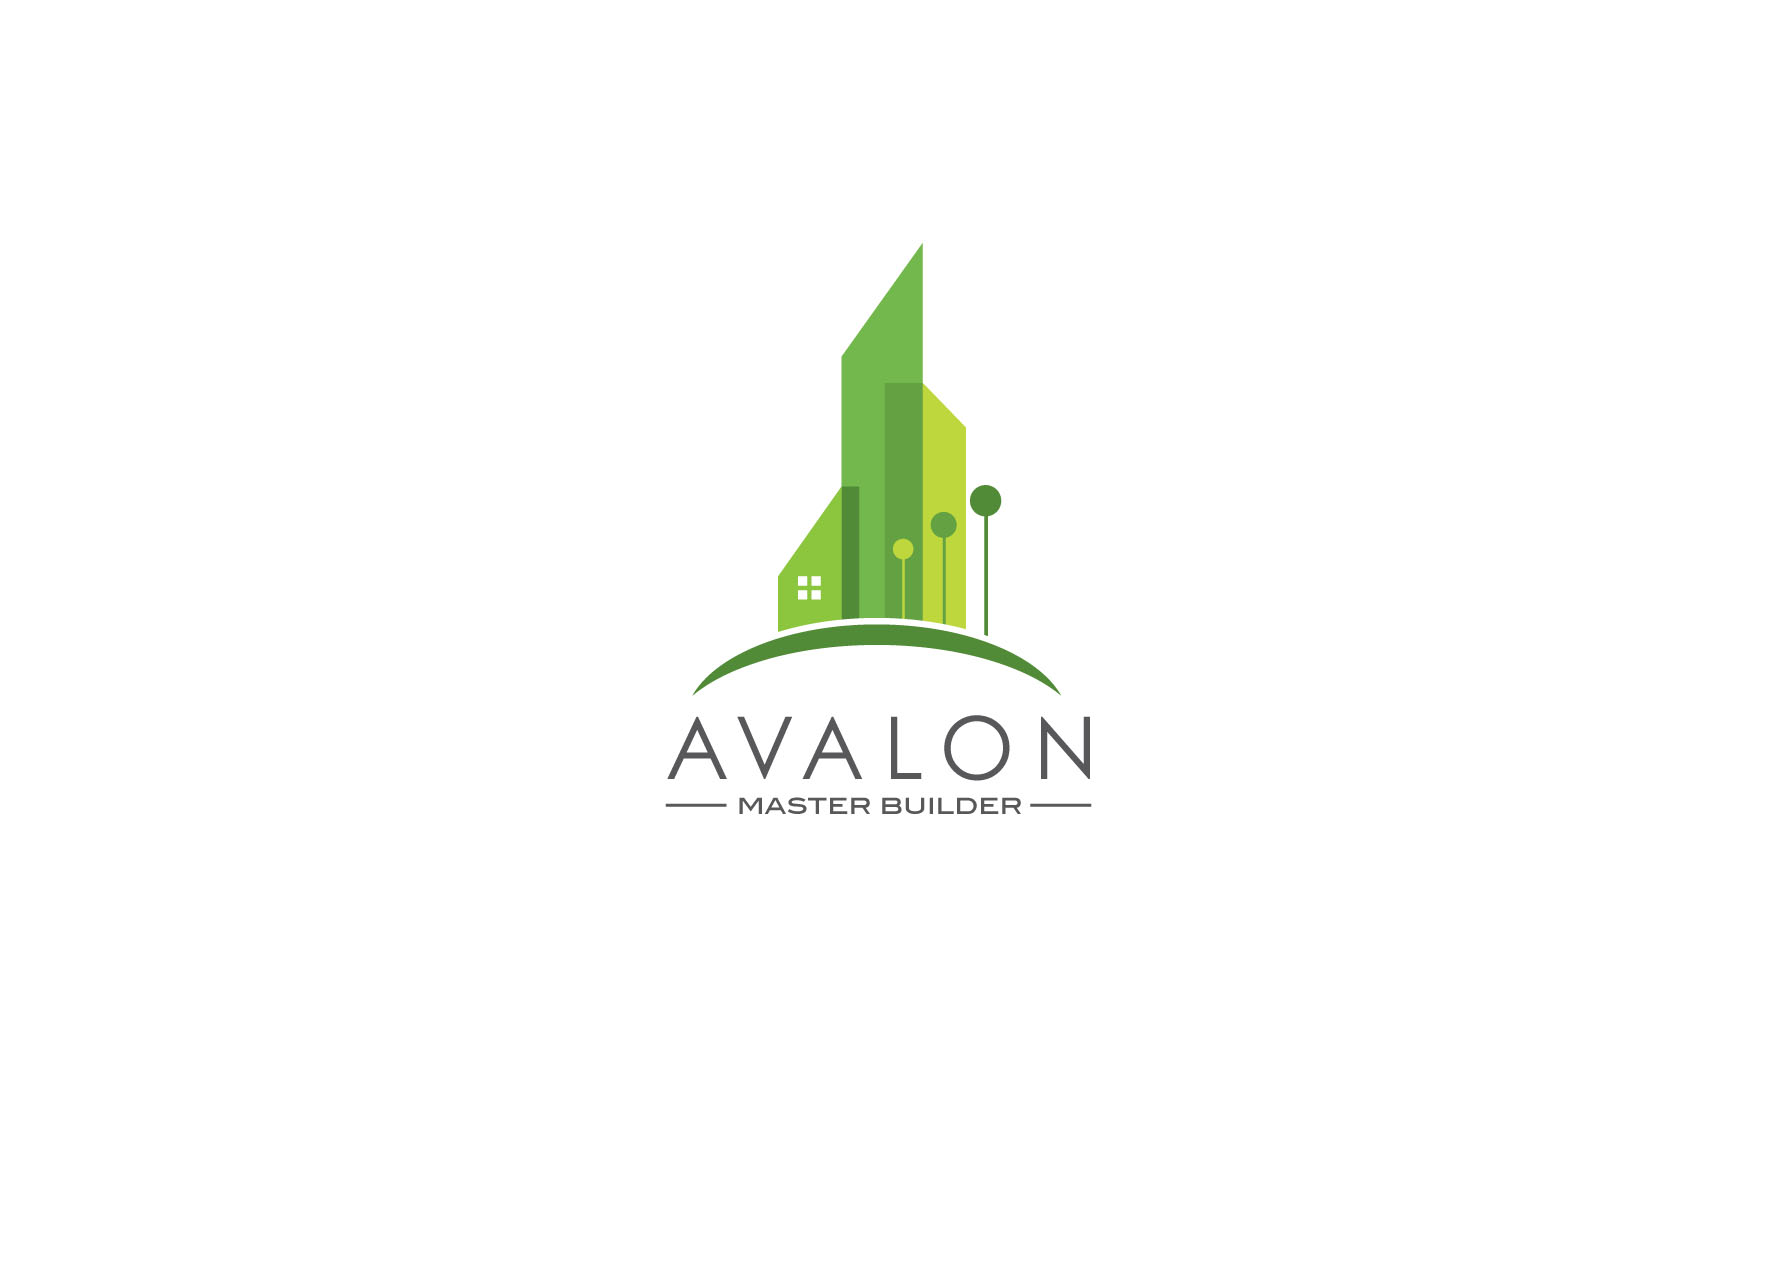 Logo Design by tanganpanas - Entry No. 44 in the Logo Design Contest Avalon Master Builder Logo Design.